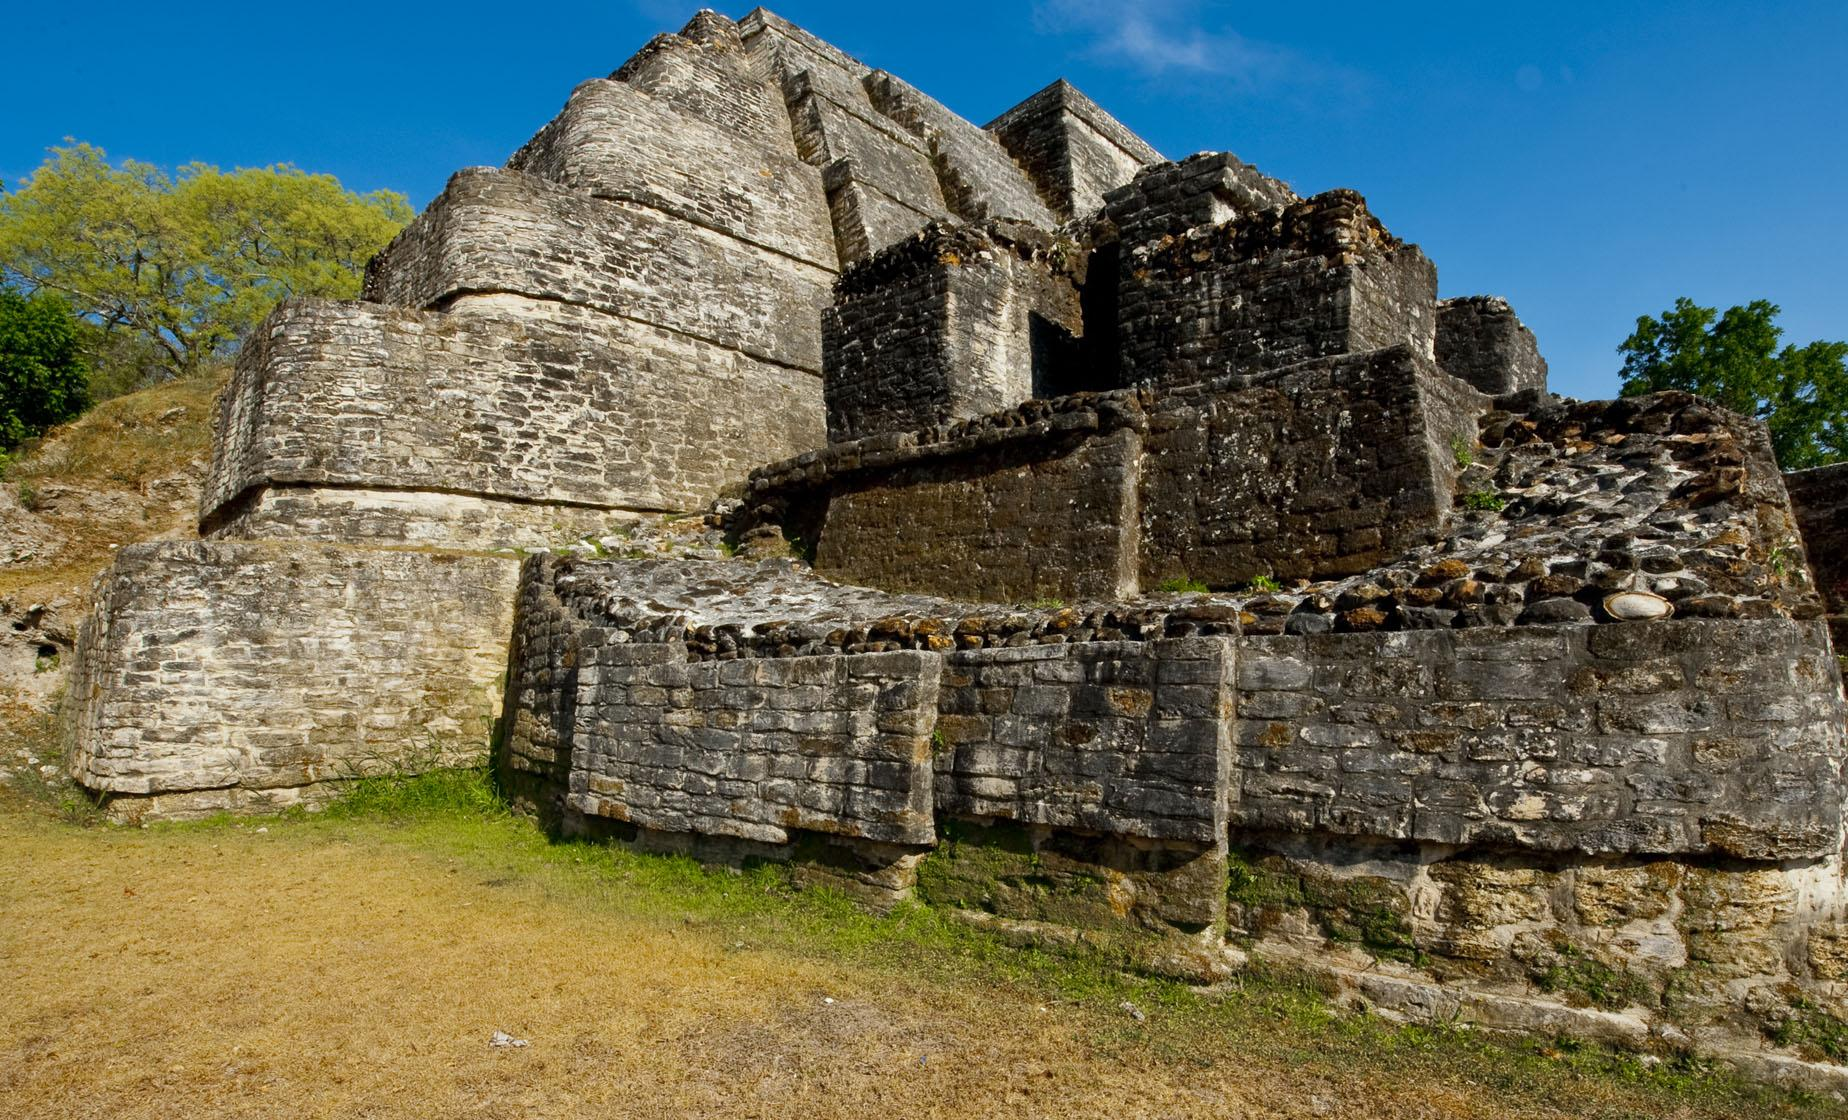 Altun Ha Mayan Ruins Excursion near Belize City